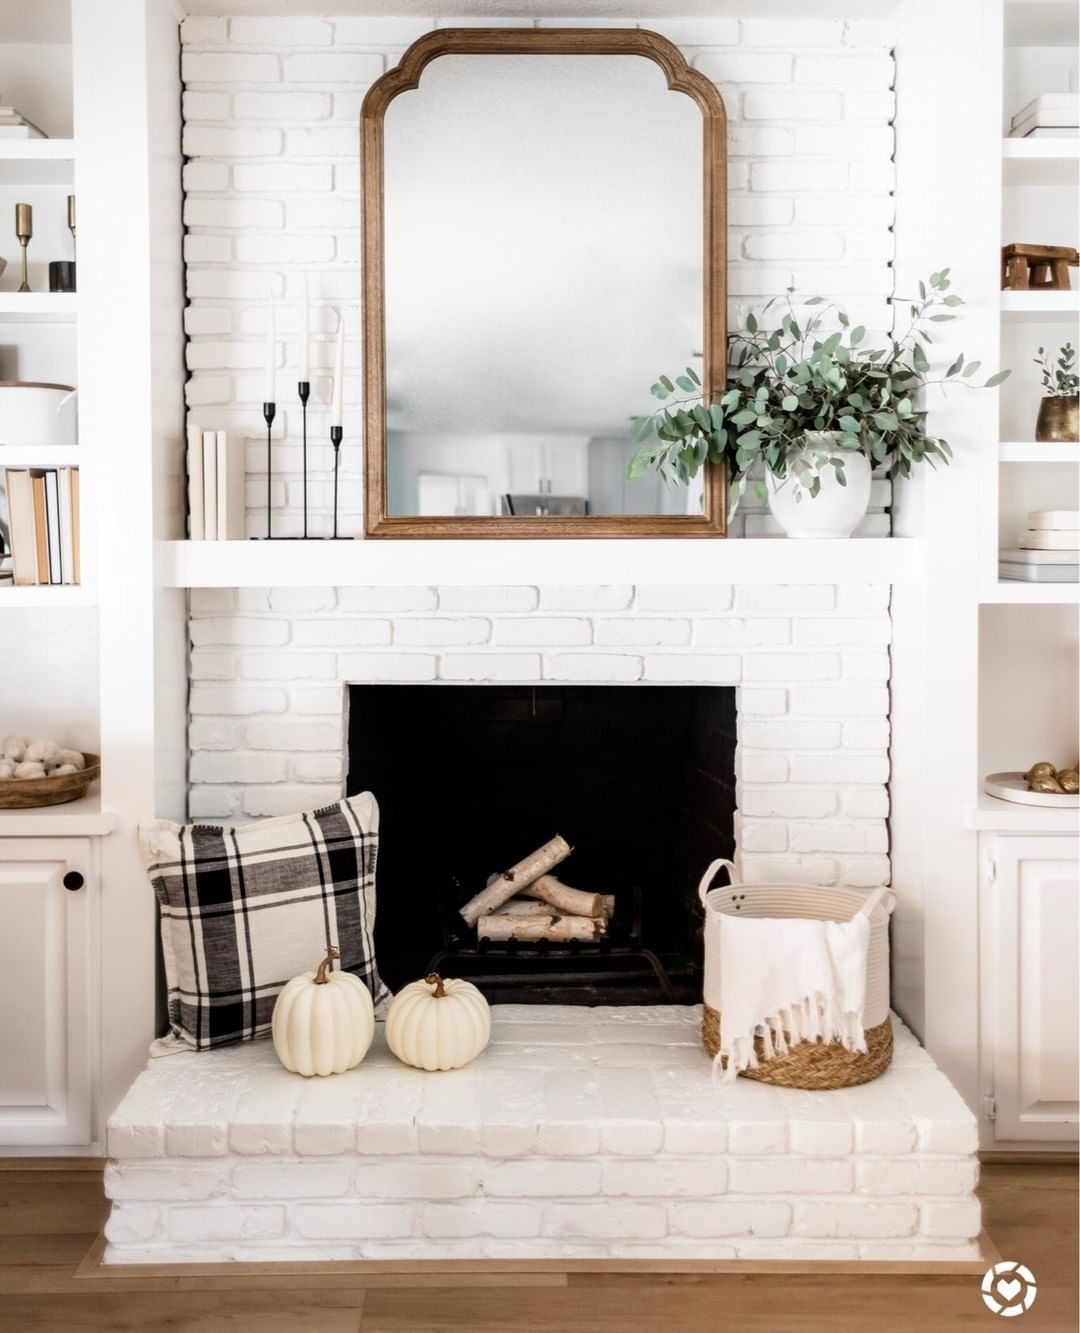 Hey Friends Katie From Halfway Wholeistic Here I M Excited To Be Hangin With You Today And Transitional Home Decor Transitional Fireplaces Fireplace Decor